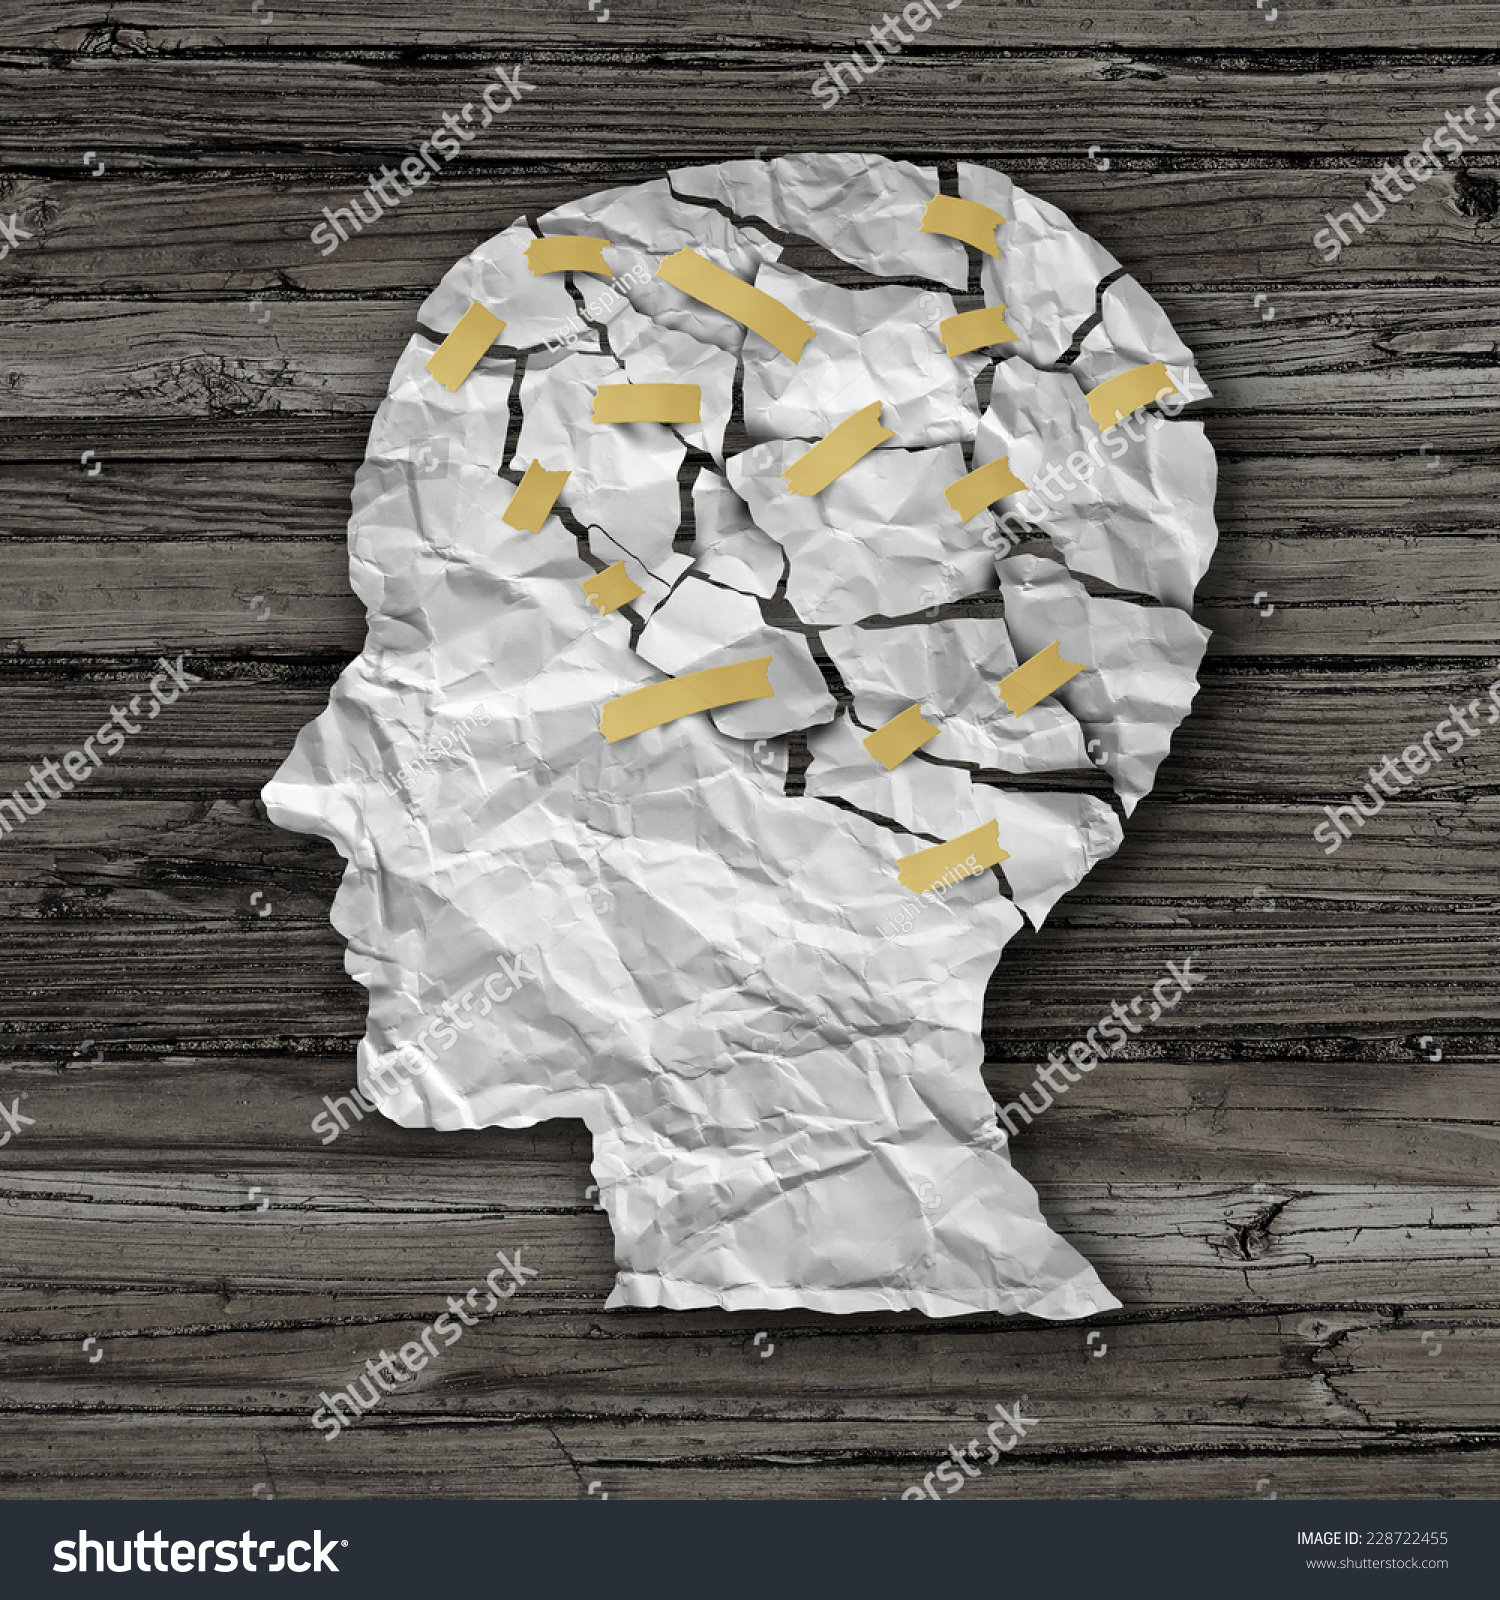 Memory loss side effect of amitriptyline picture 1